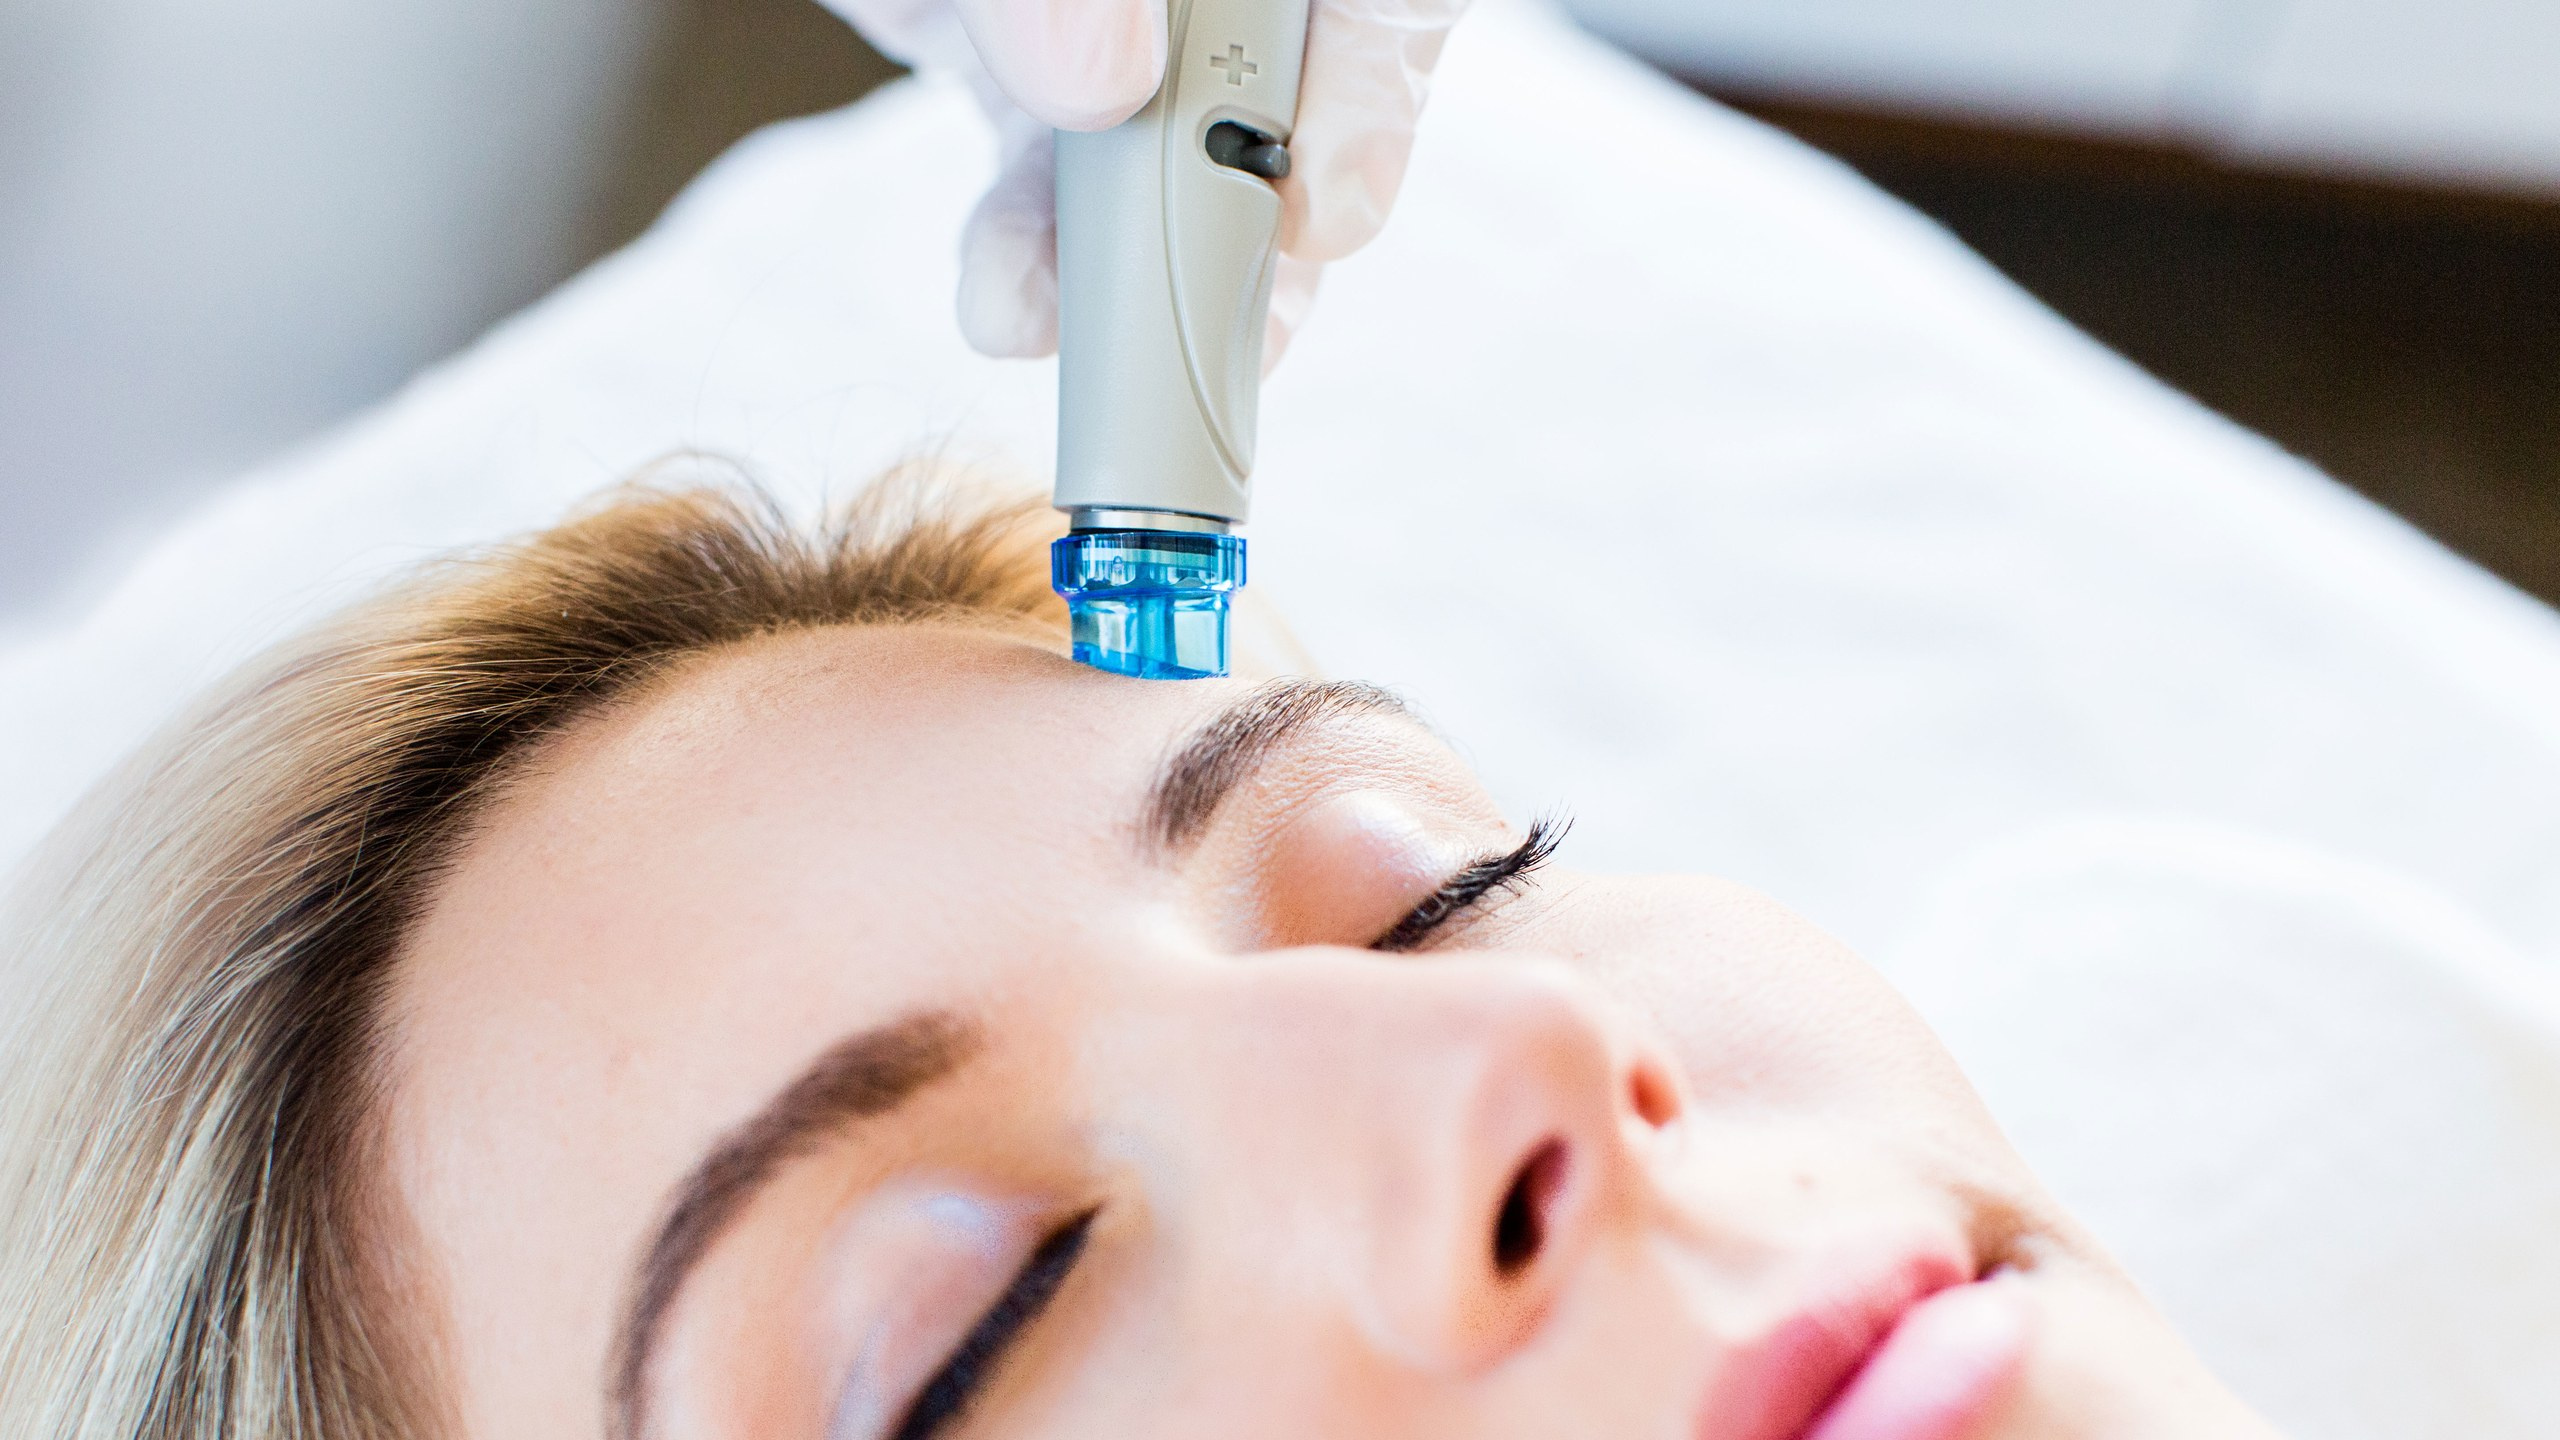 hydrafacial-treatment-in-spas